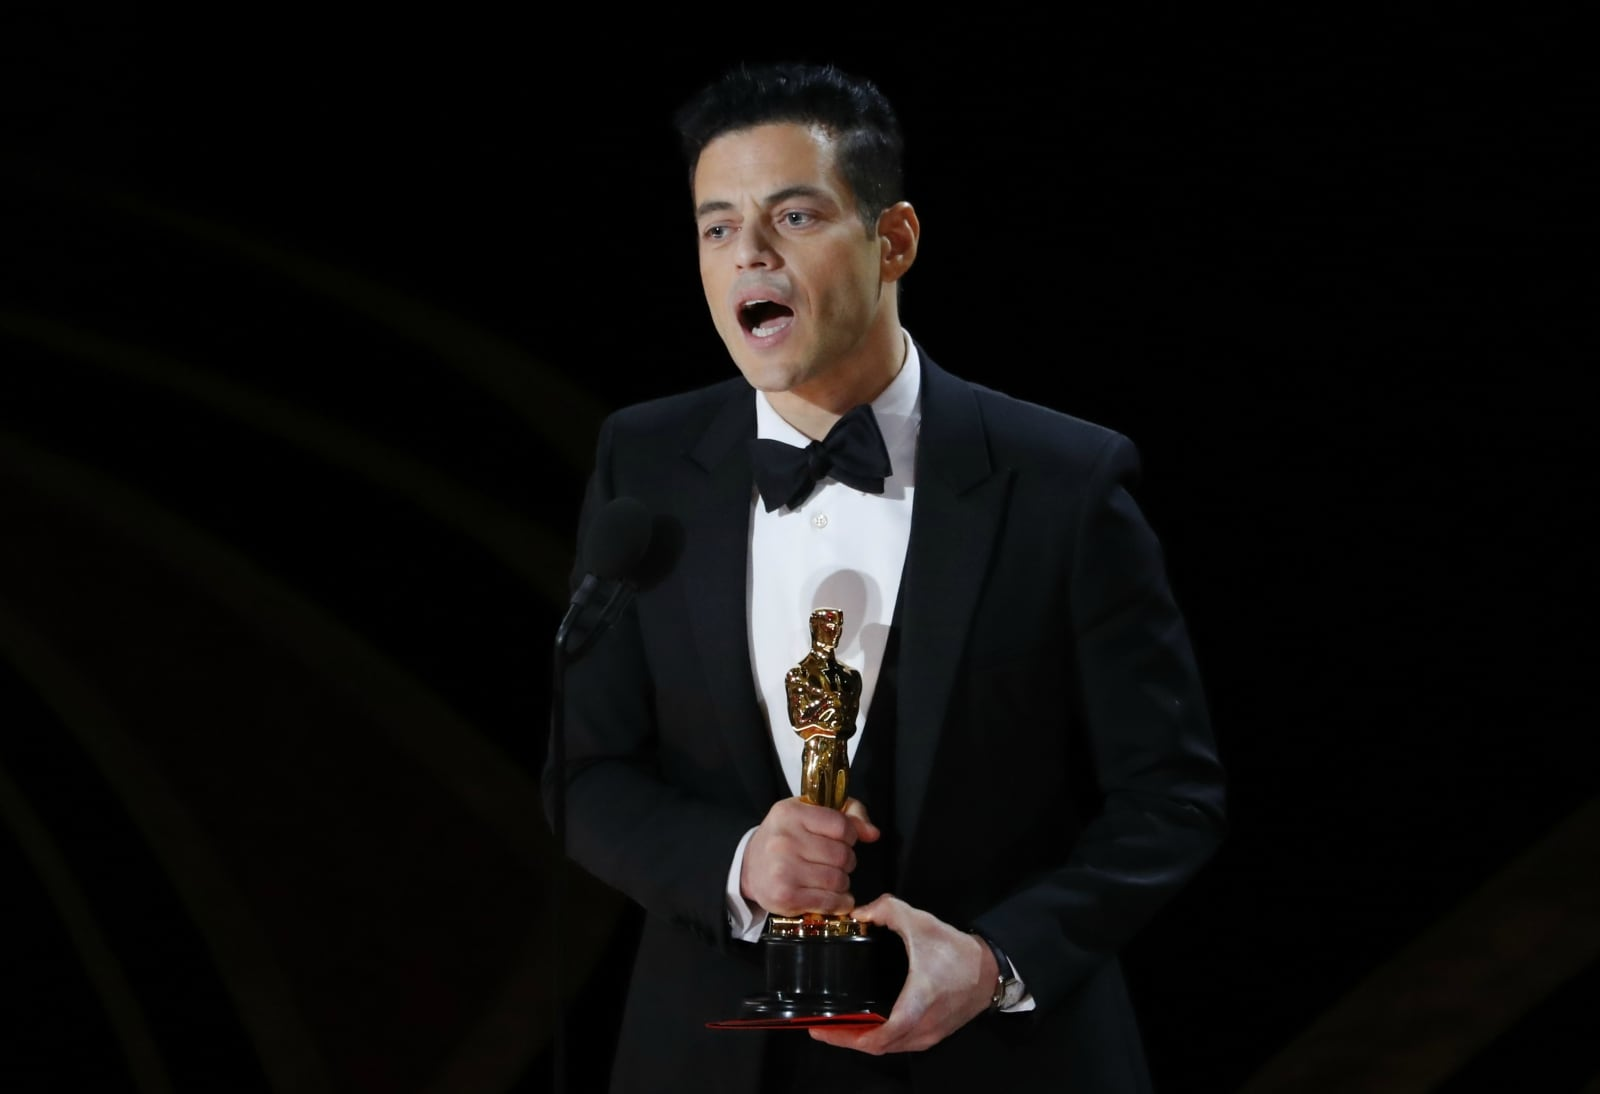 91st Academy Awards - Oscars Show - Hollywood, Los Angeles, California, US, February 24, 2019. Rami Malek accepts the Best Actor award for his role in